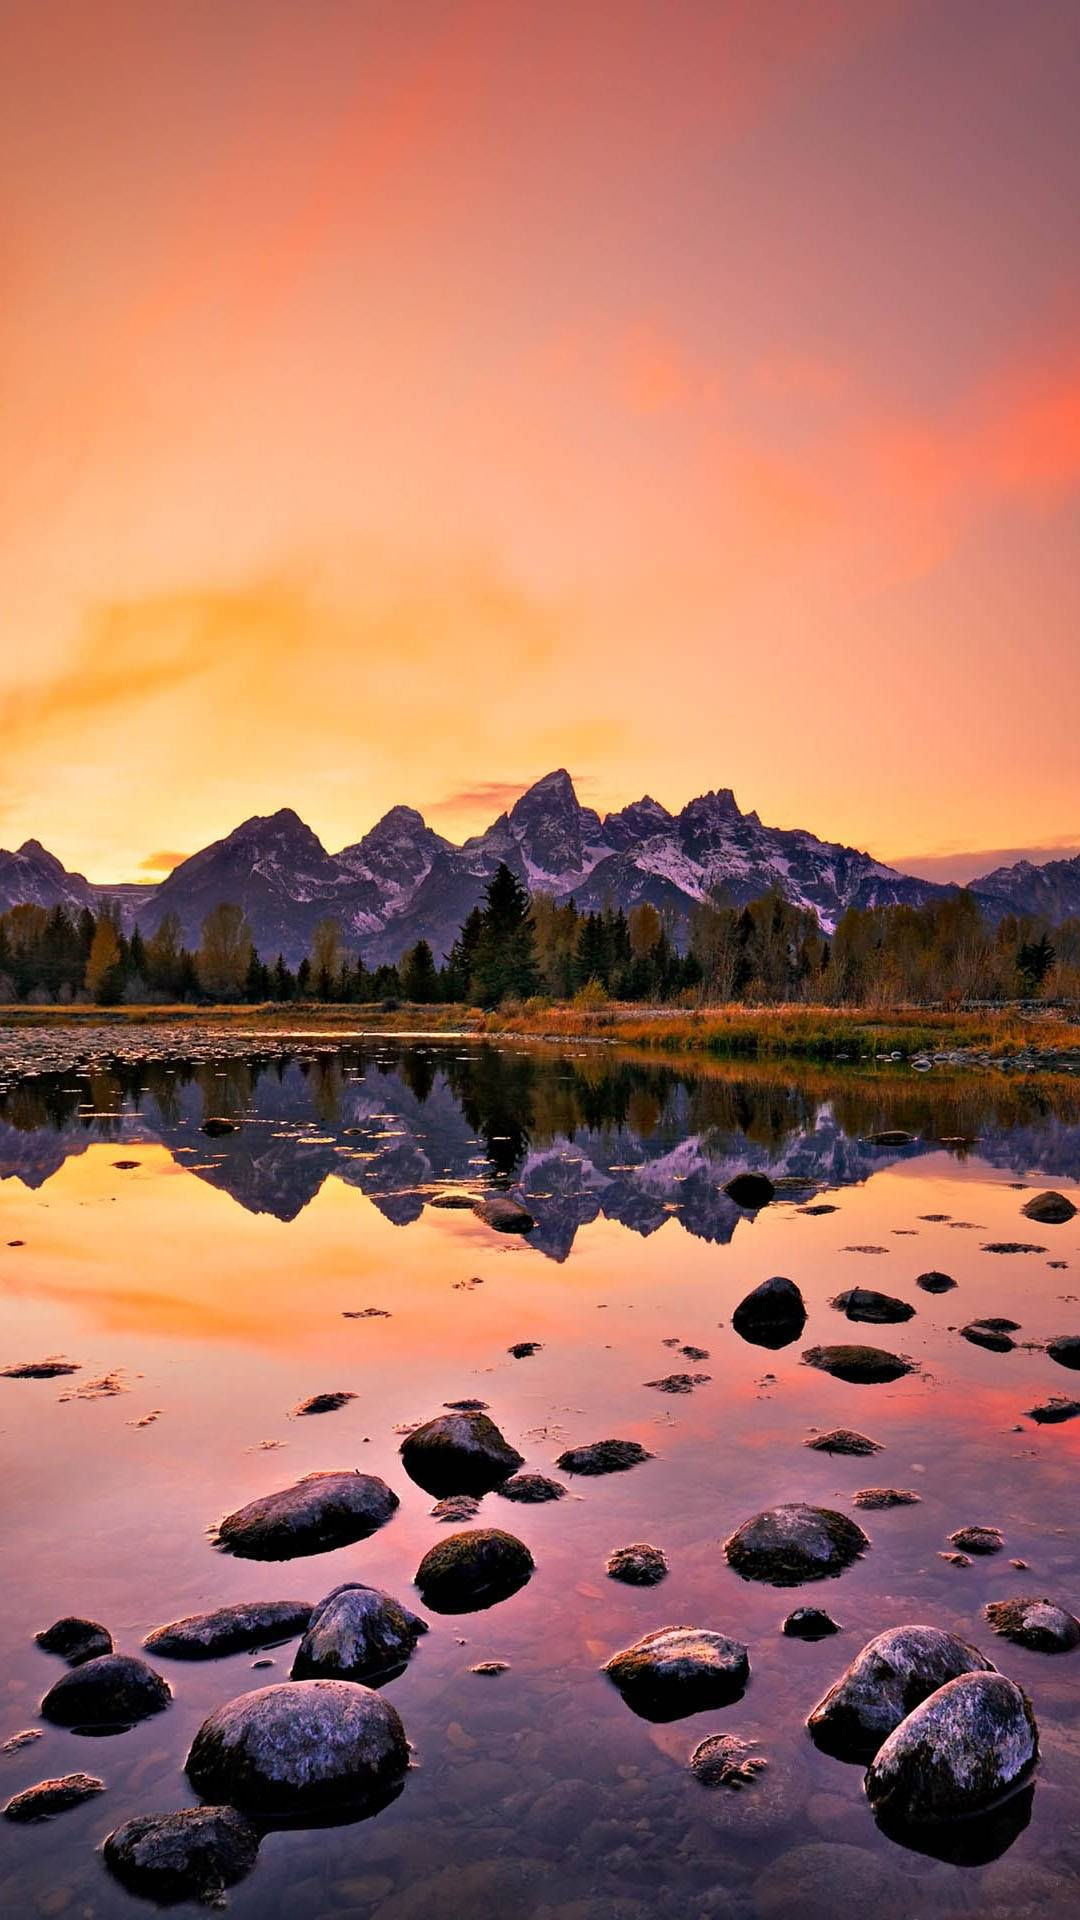 Wallpapers-For-Galaxy-S4-Landscapes-36